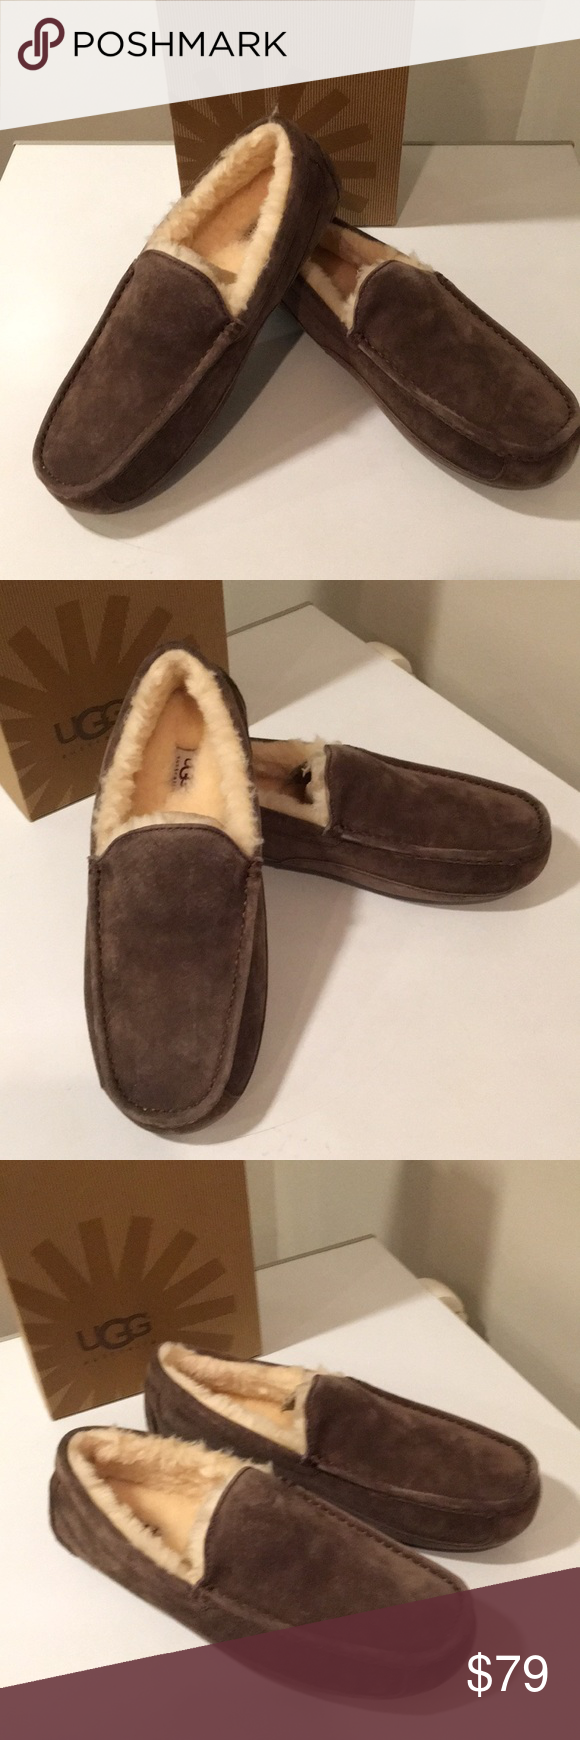 6e14d695c5a 🔥New Ugg Ascot Espresso Suede Moccasin slippers New Ascot Espresso  moccasin Suede slippers ☃ ❤ This best-selling men s style is a winter  favorite.